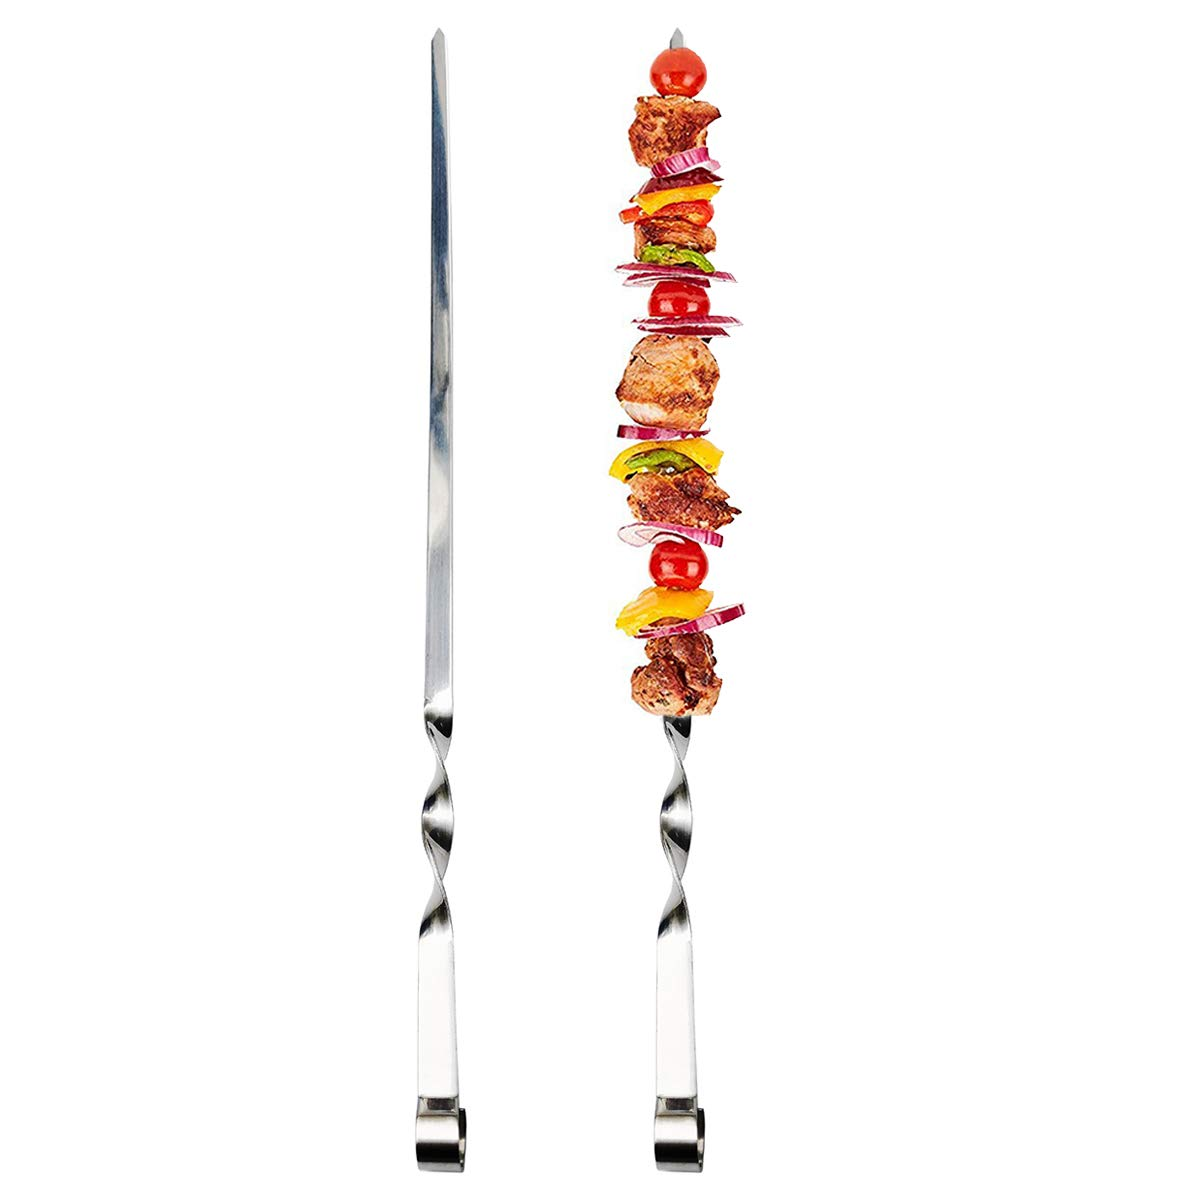 Antallcky 12 Pack Kabob Skewers BBQ Barbecue Skewers Stainless Steel Sticks 22 Inch Heavy Duty Large Wide Reusable with Nonslip Ring Handle Ideal for Shish Kebab Chicken Shrimp and Vegetables